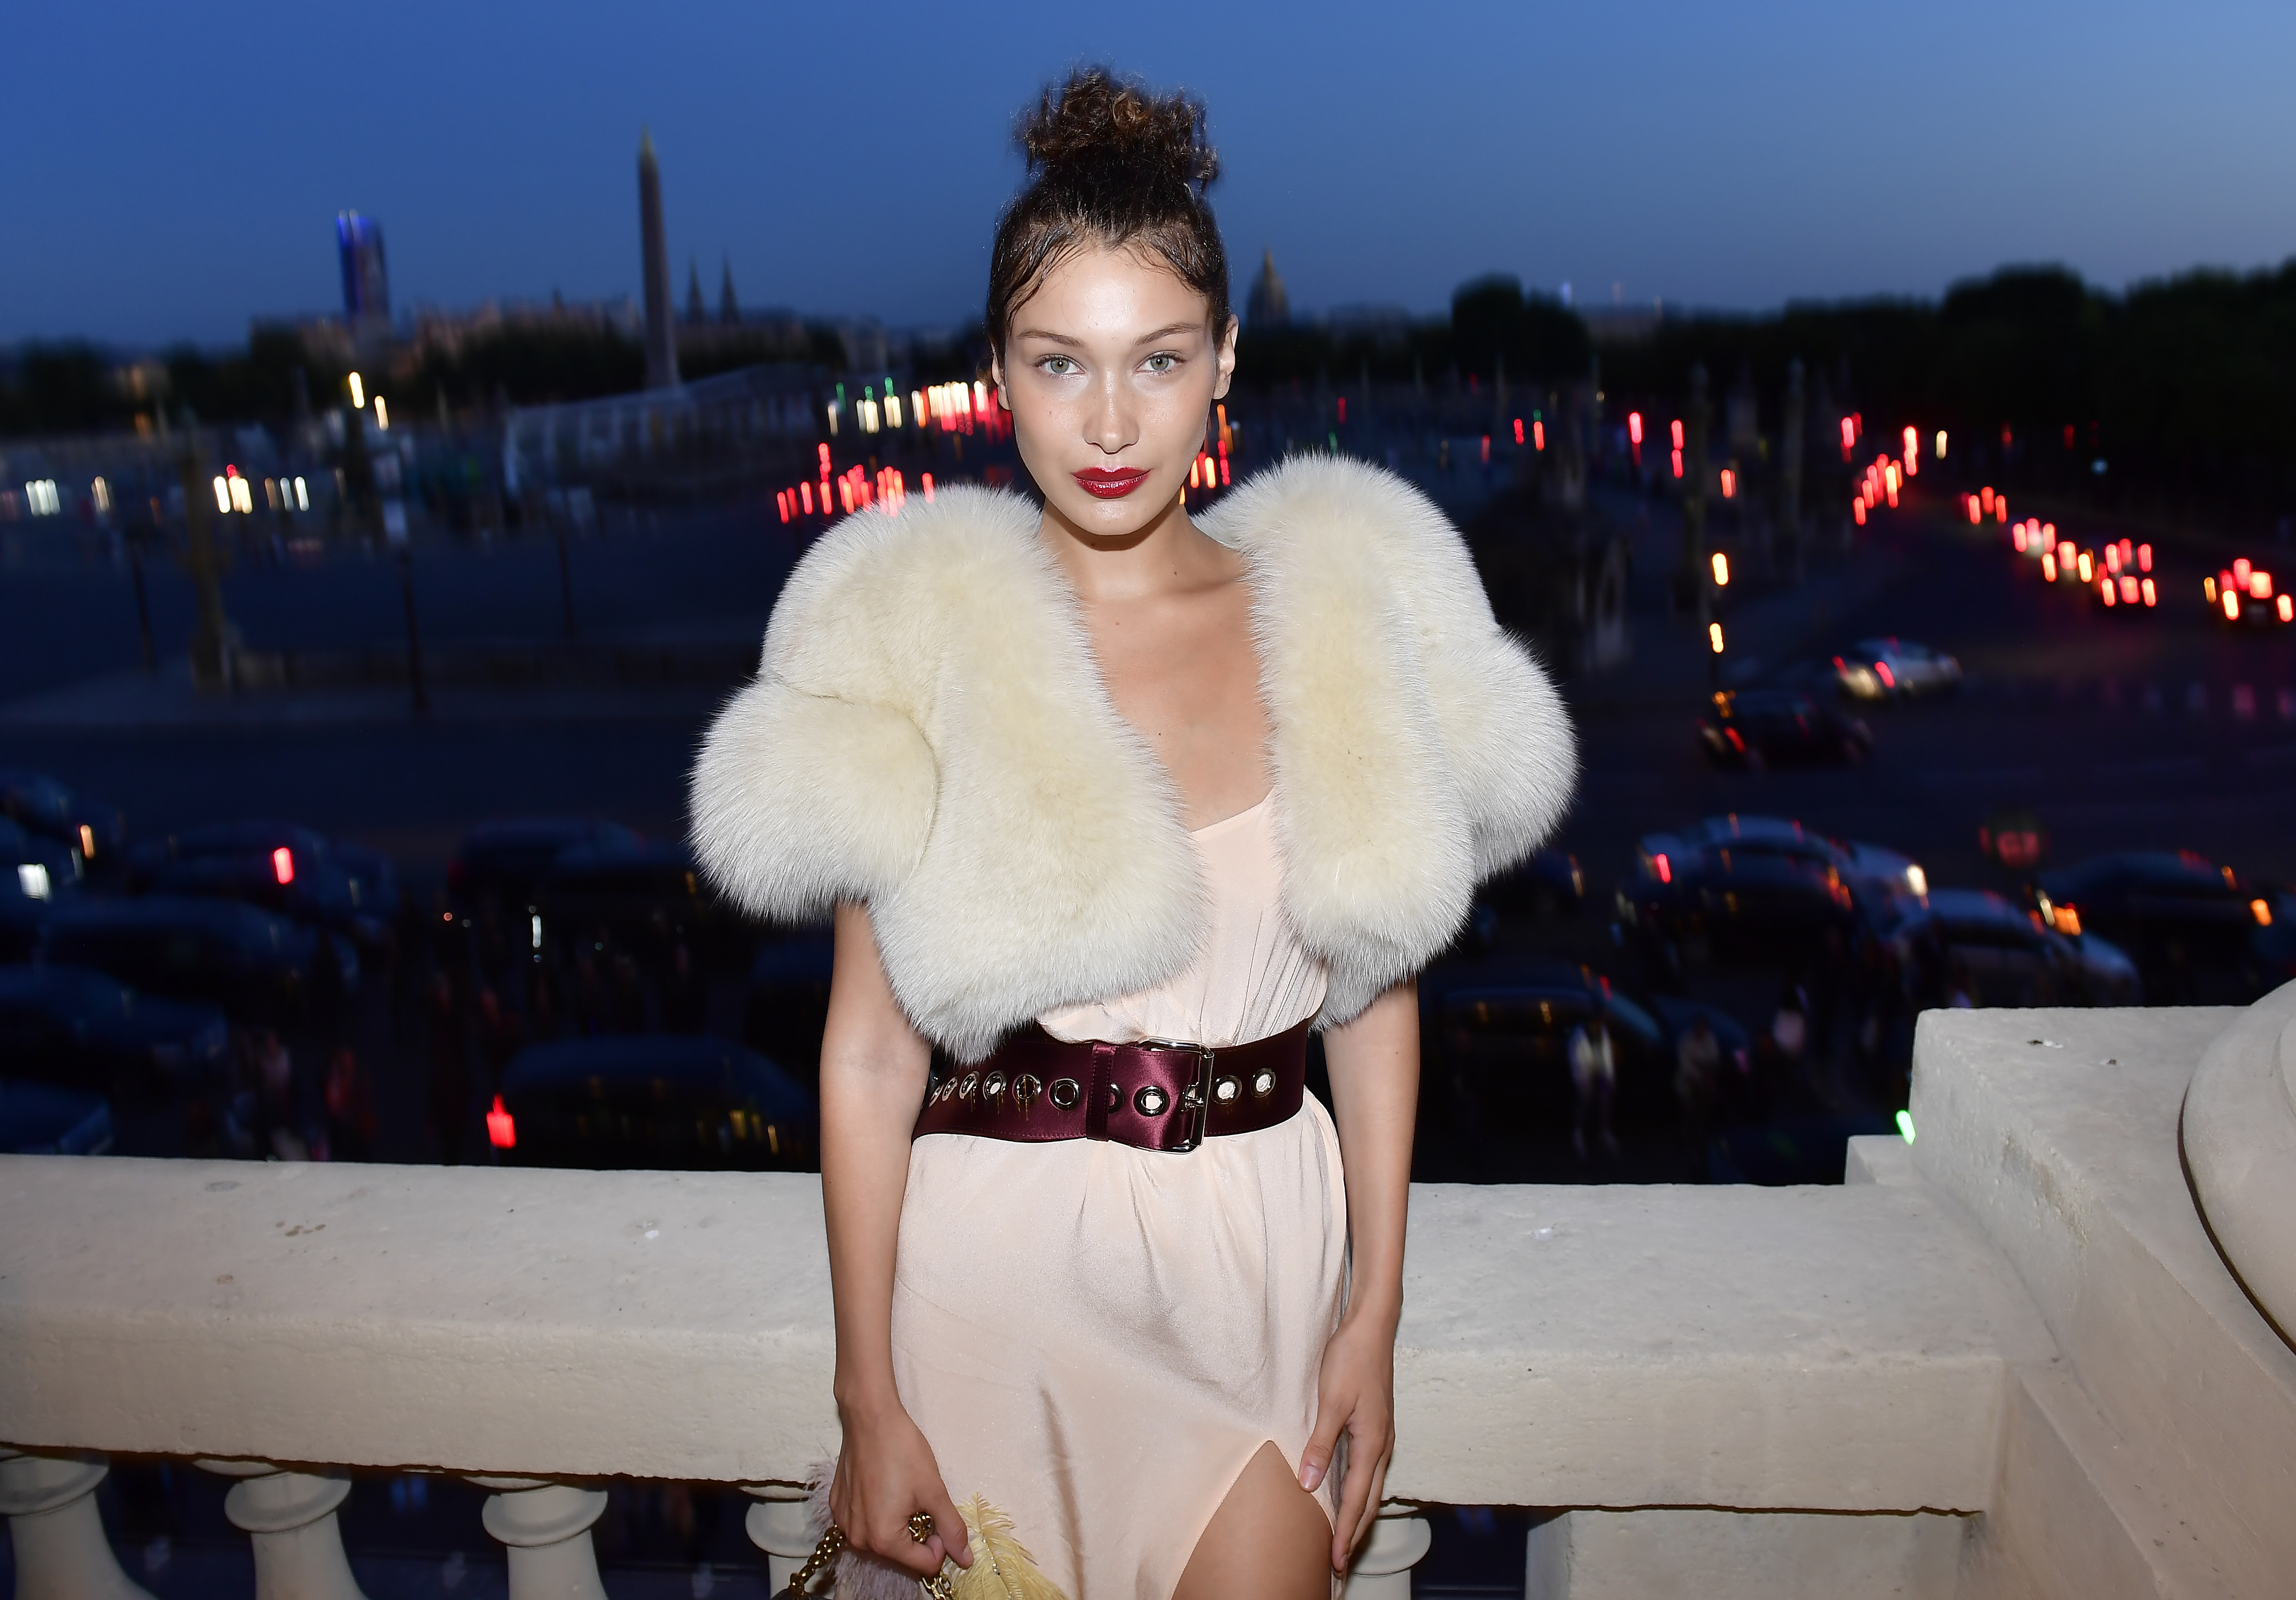 PARIS, FRANCE - JULY 02:  Bella Hadid attends Miu Miu Cruise Collection cocktail & party as part of Haute Couture Paris Fashion Week on July 2, 2017 in Paris, France.  (Photo by Victor Boyko/Getty Images for Miu Miu) *** Local Caption *** Bella Hadid